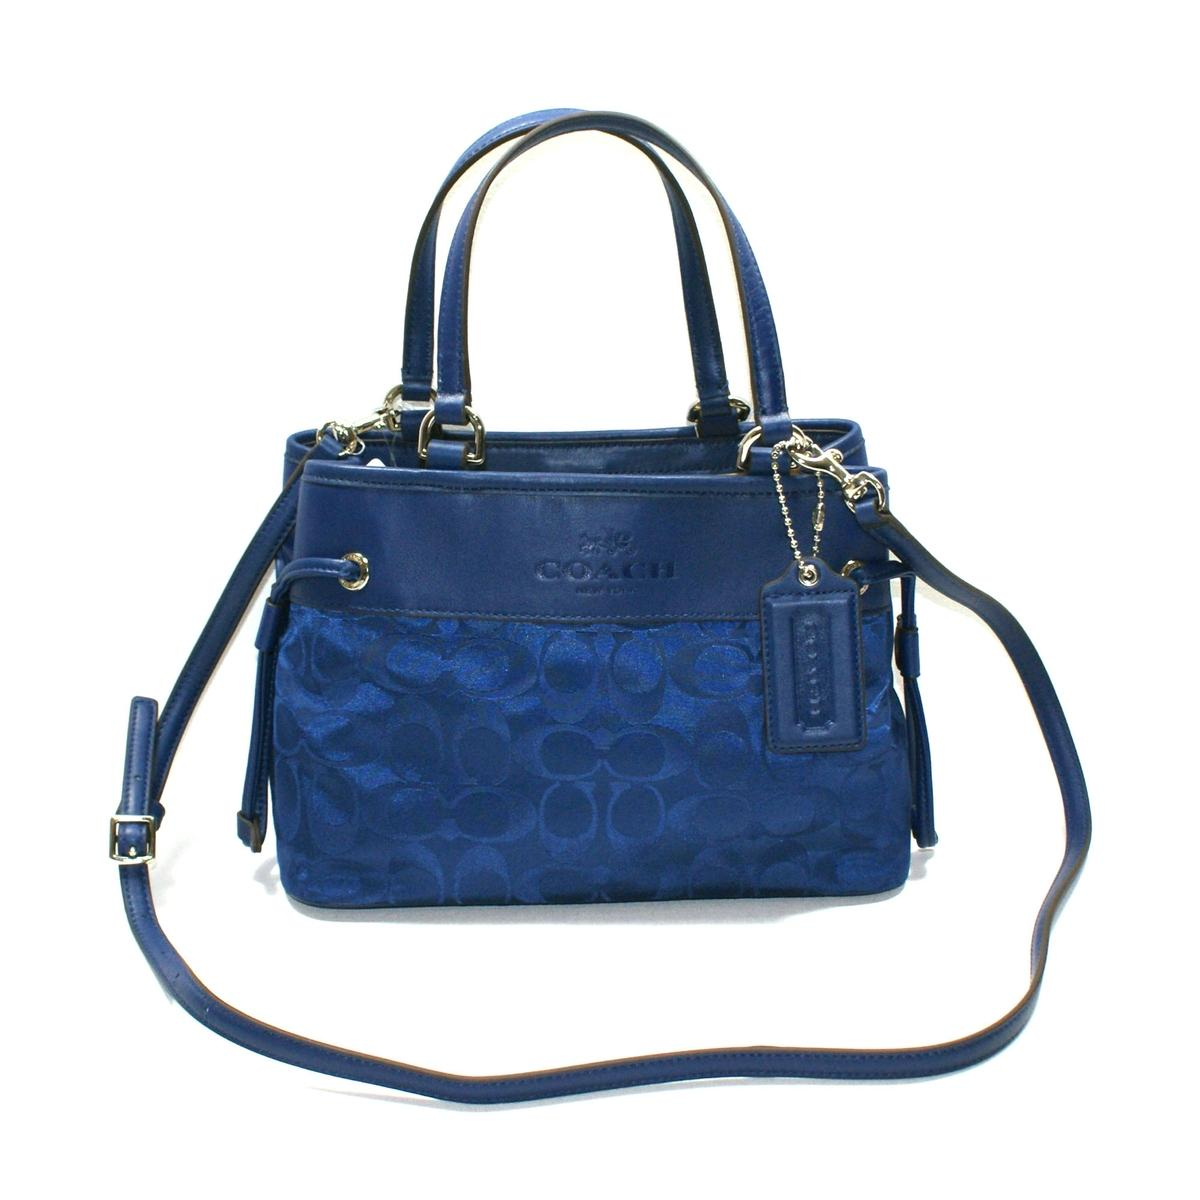 Free shipping BOTH ways on Handbags, Navy, from our vast selection of styles. Fast delivery, and 24/7/ real-person service with a smile. Click or call